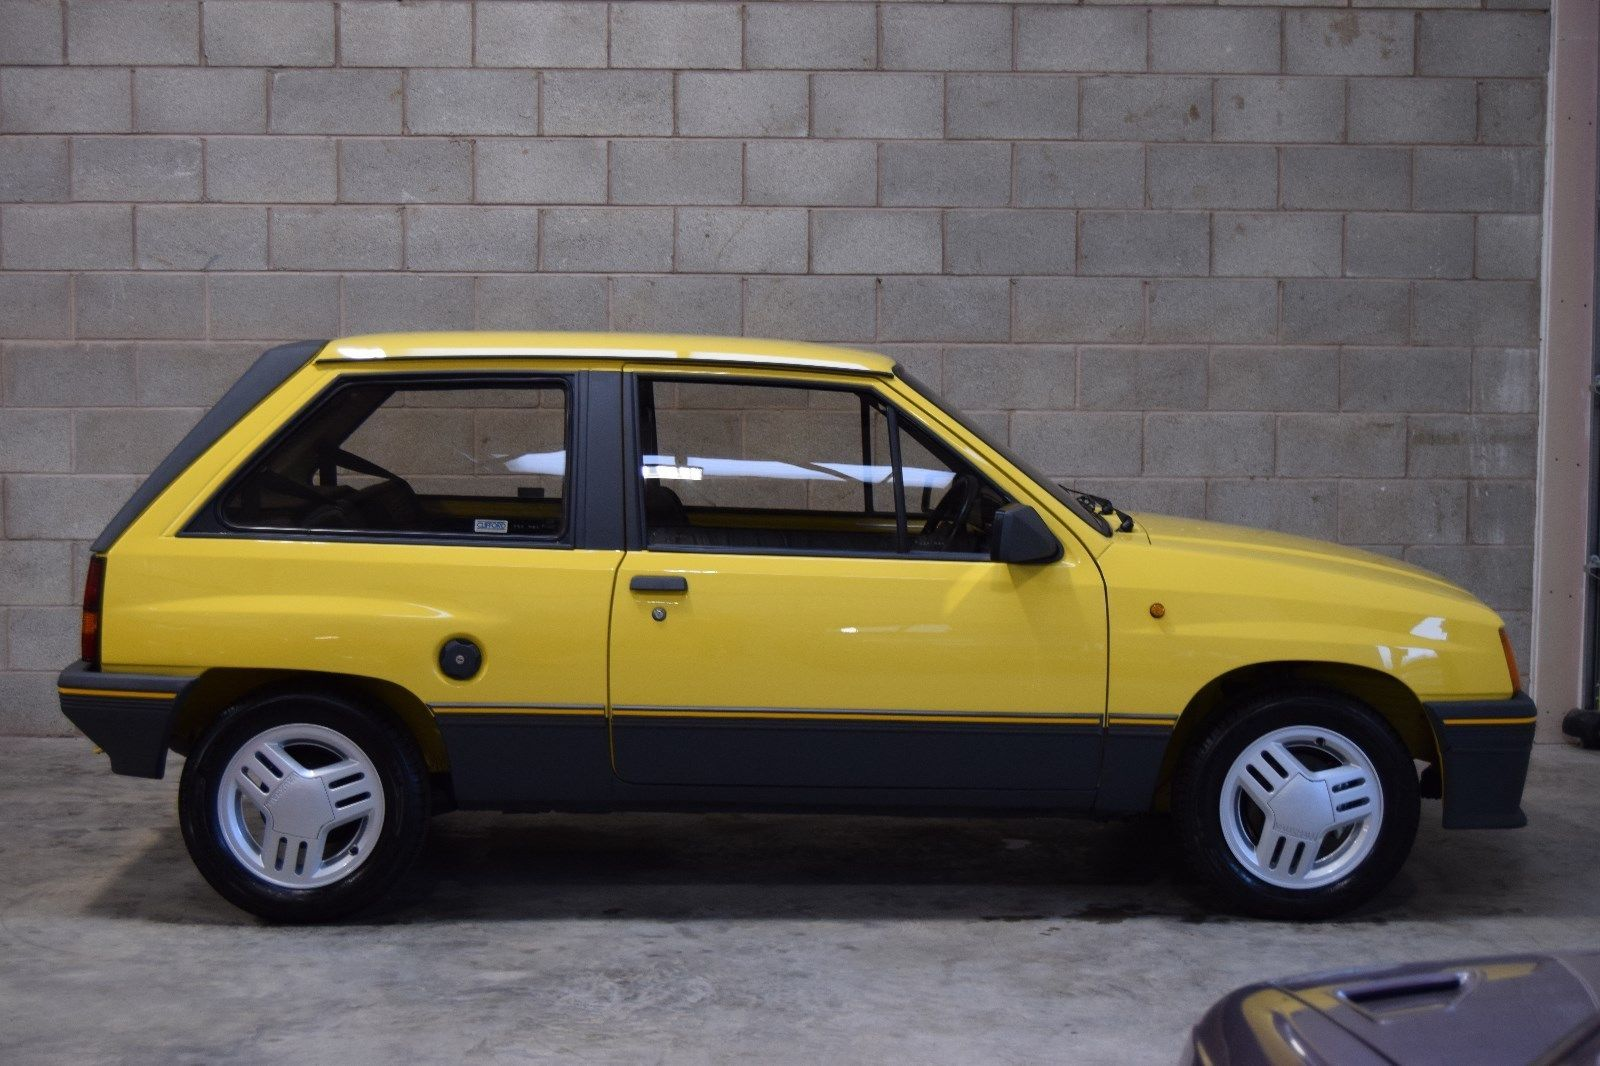 eBay 1986 Vauxhall Nova 1.3 SR, Jamaica Yellow...This Car